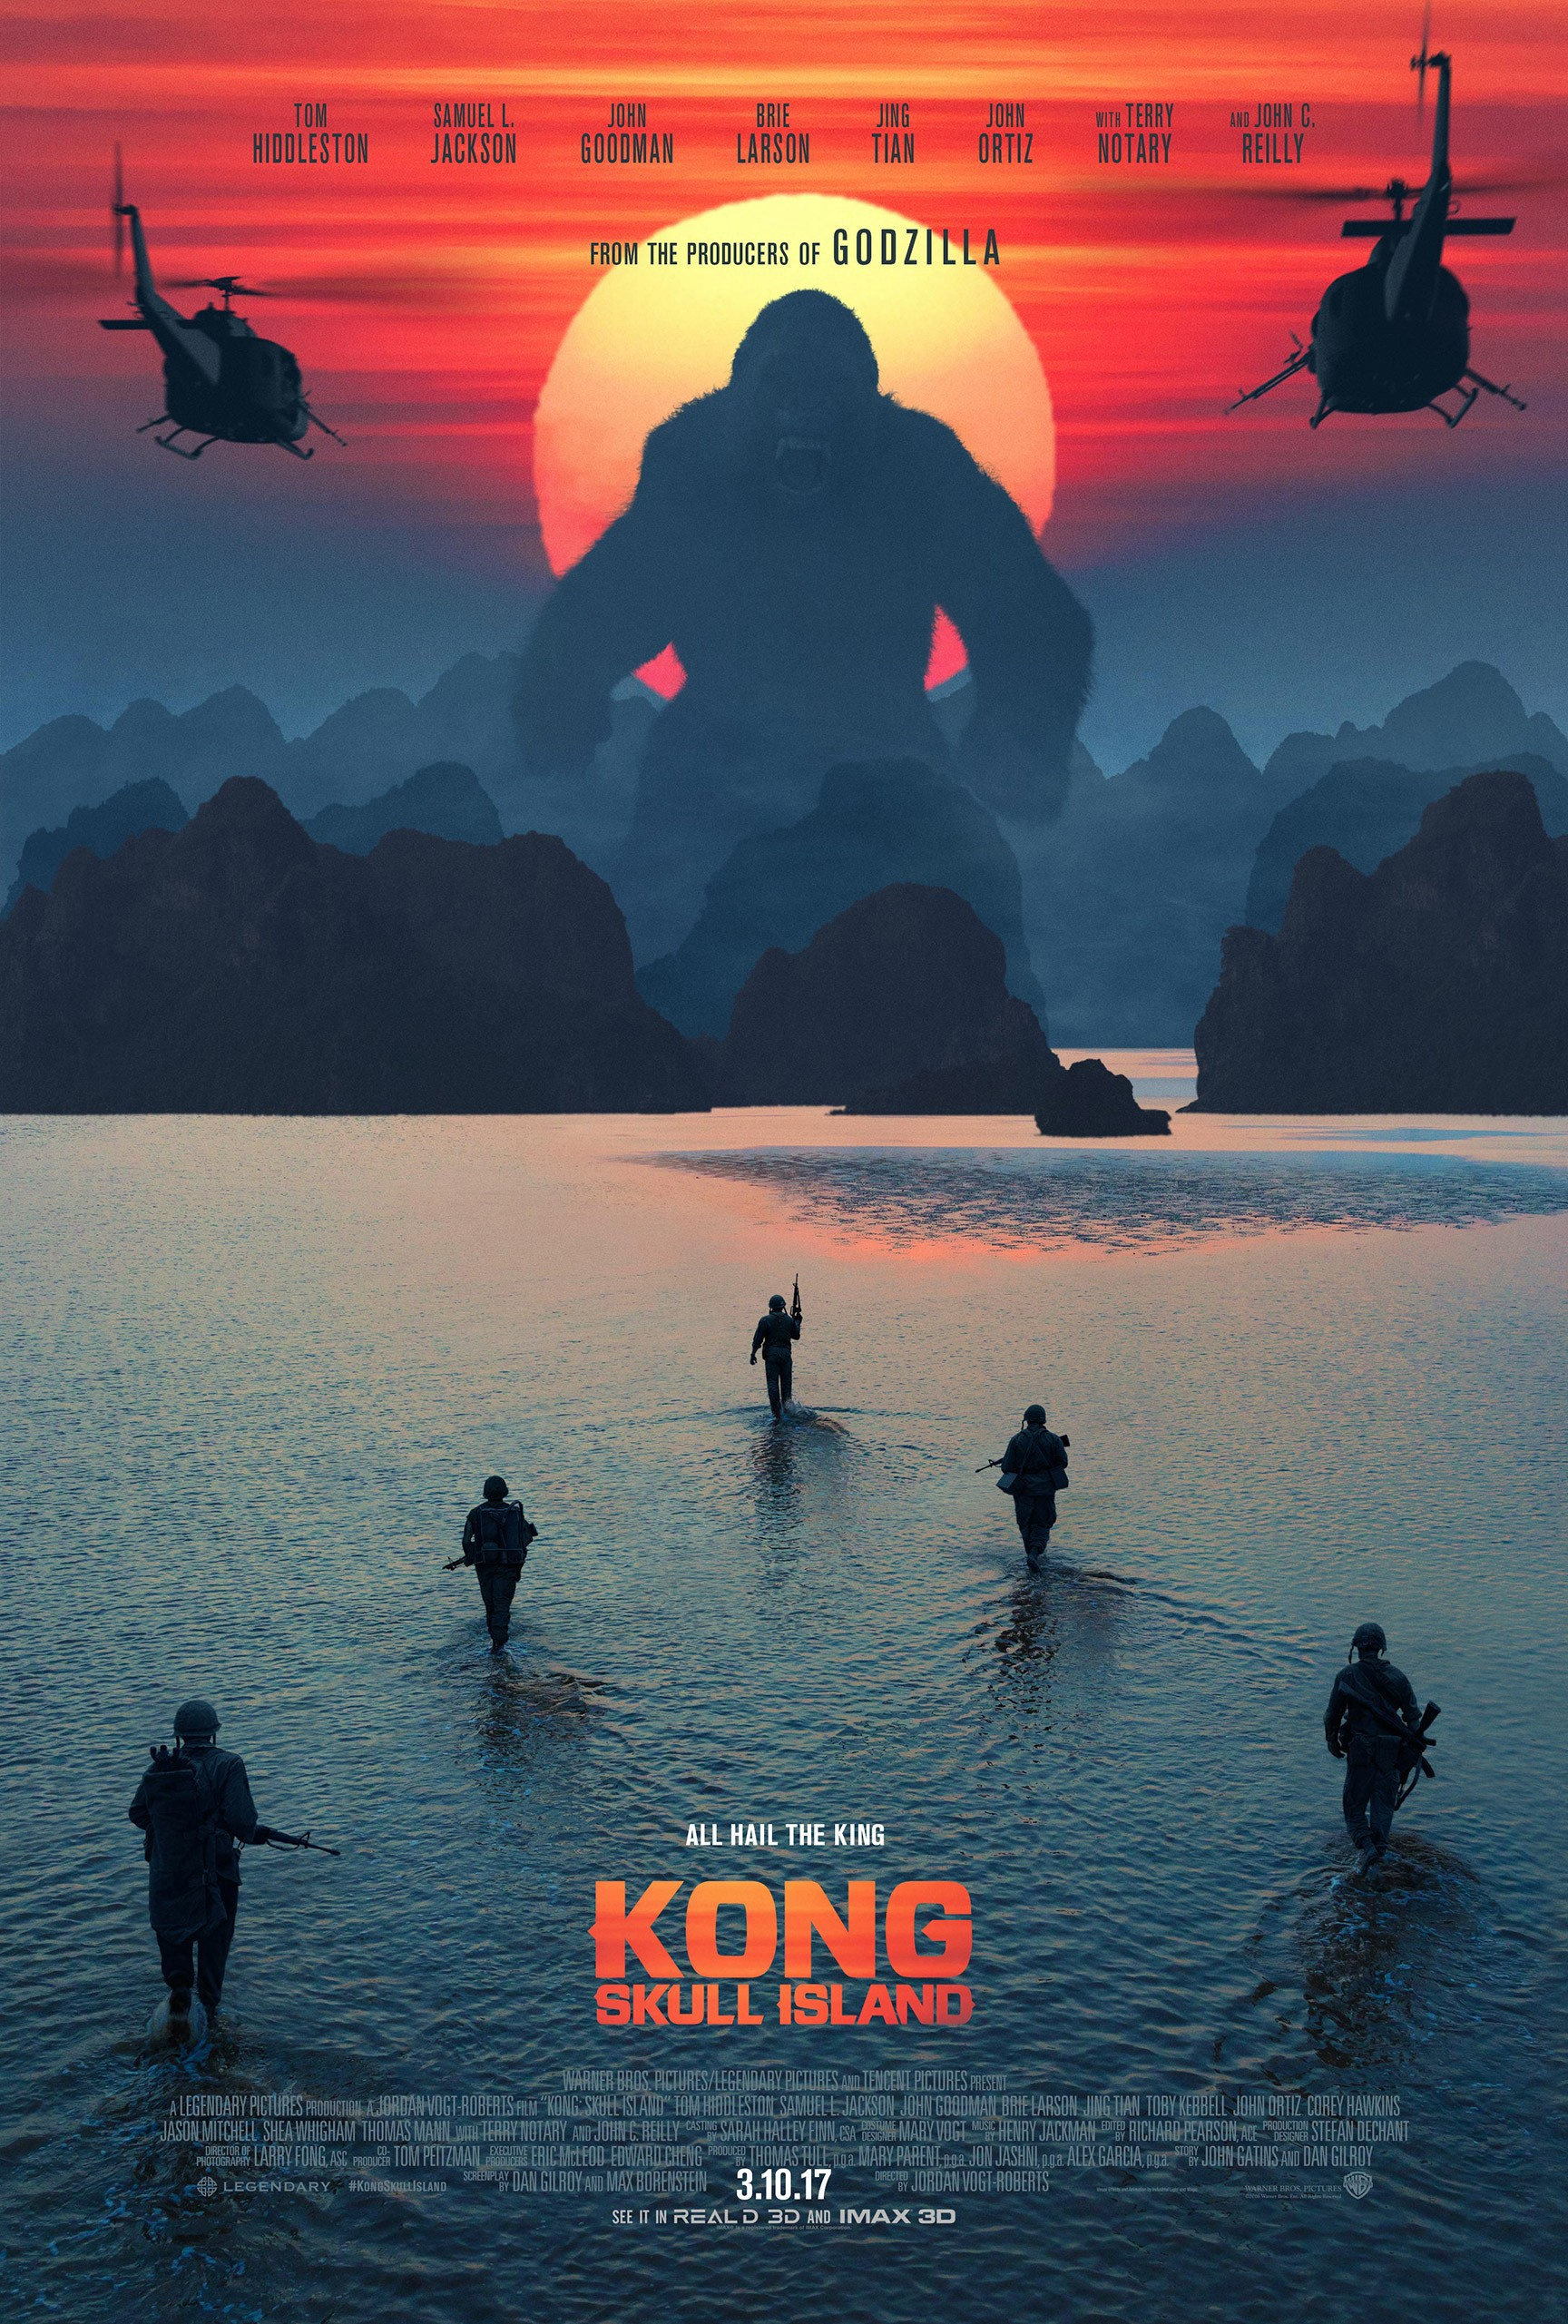 kong skull island full movie online free 123movies